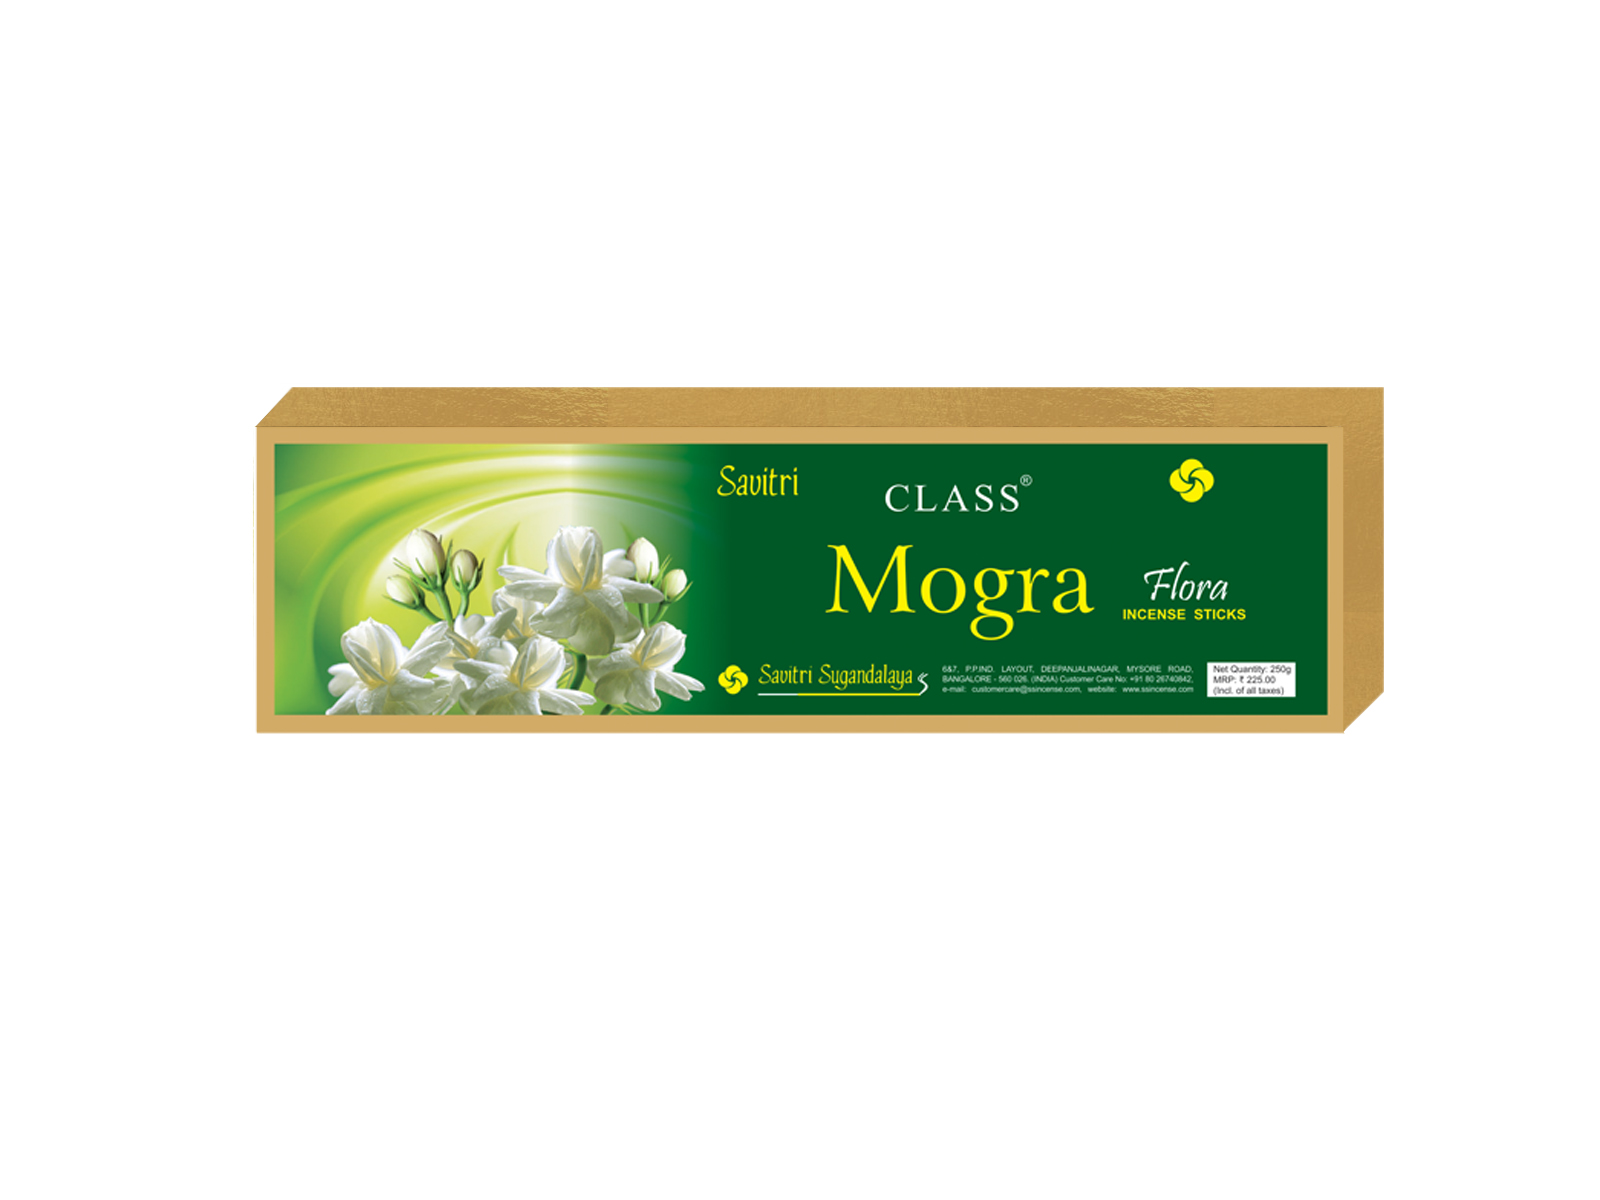 Mogra_gold Box